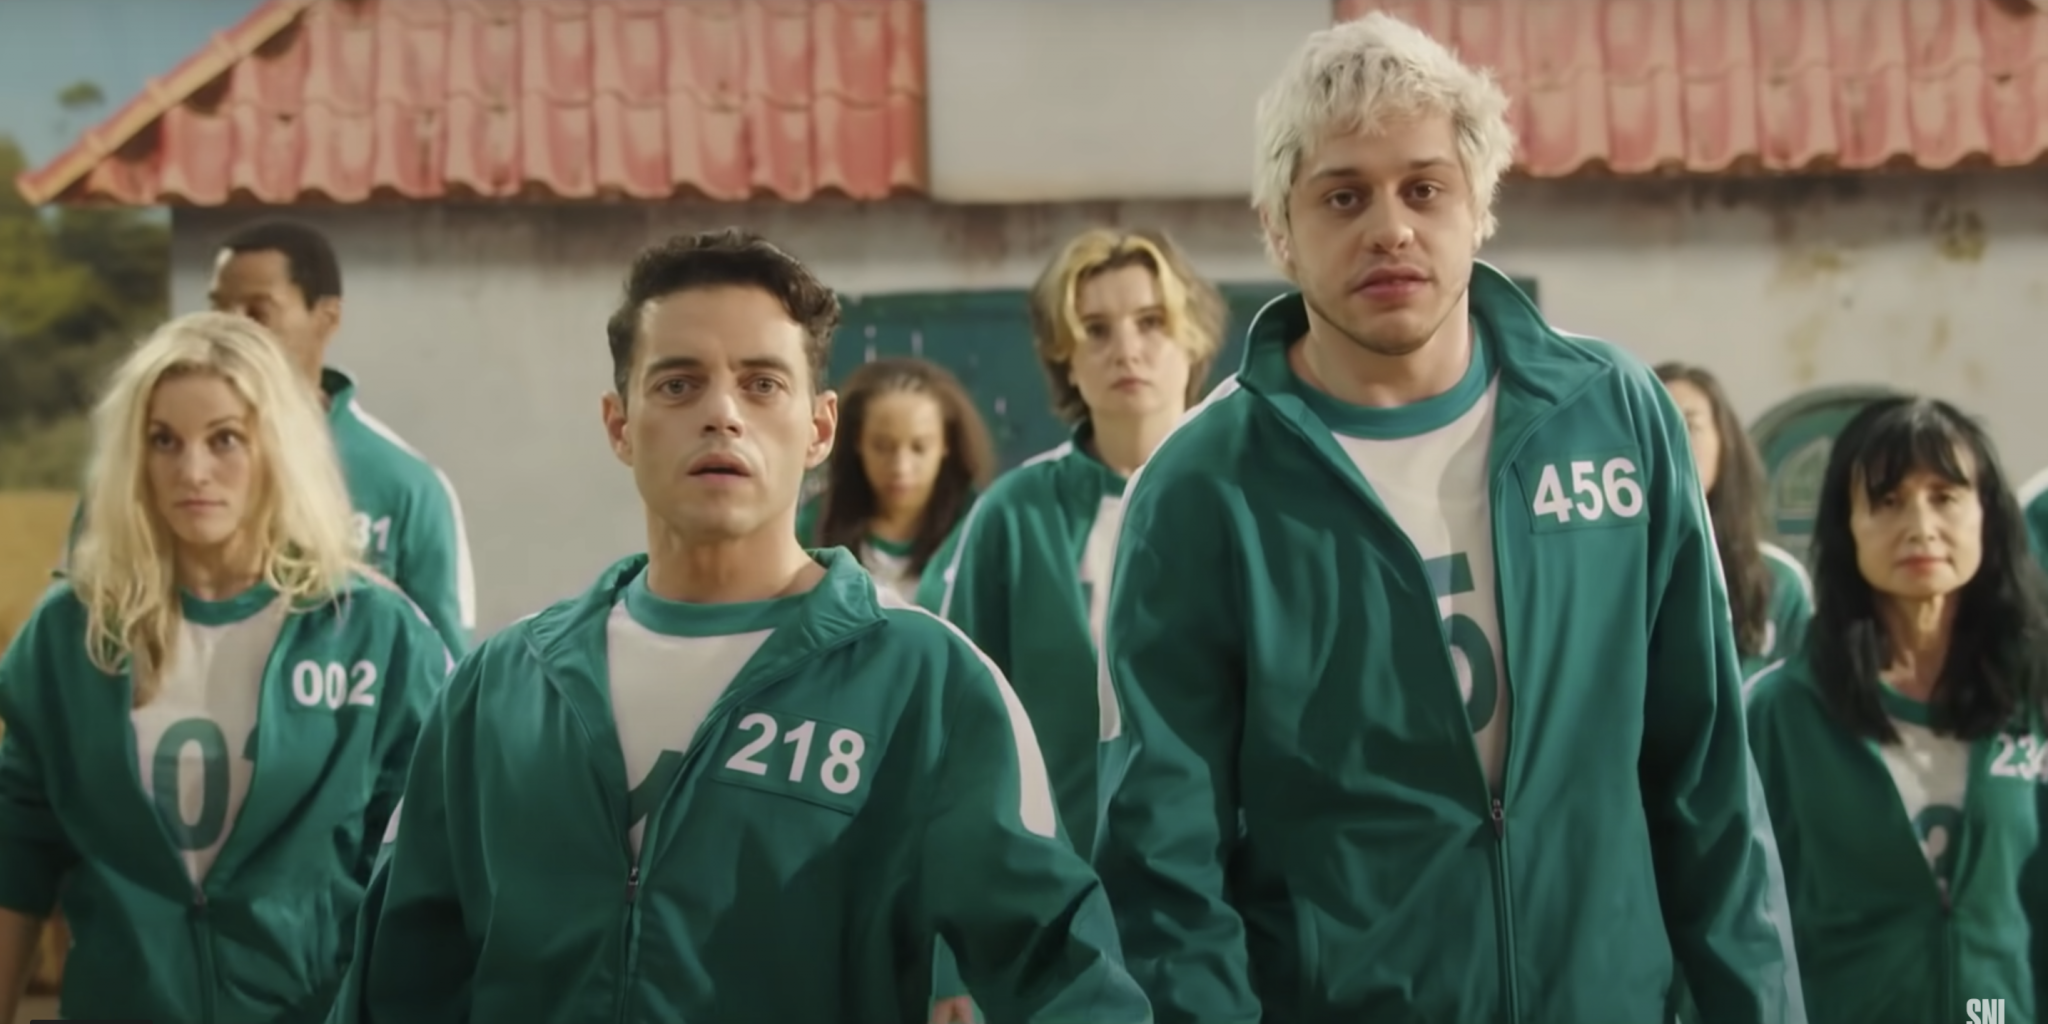 Popular Netflix series 'Squid Game' is the star of 'SNL' sketch